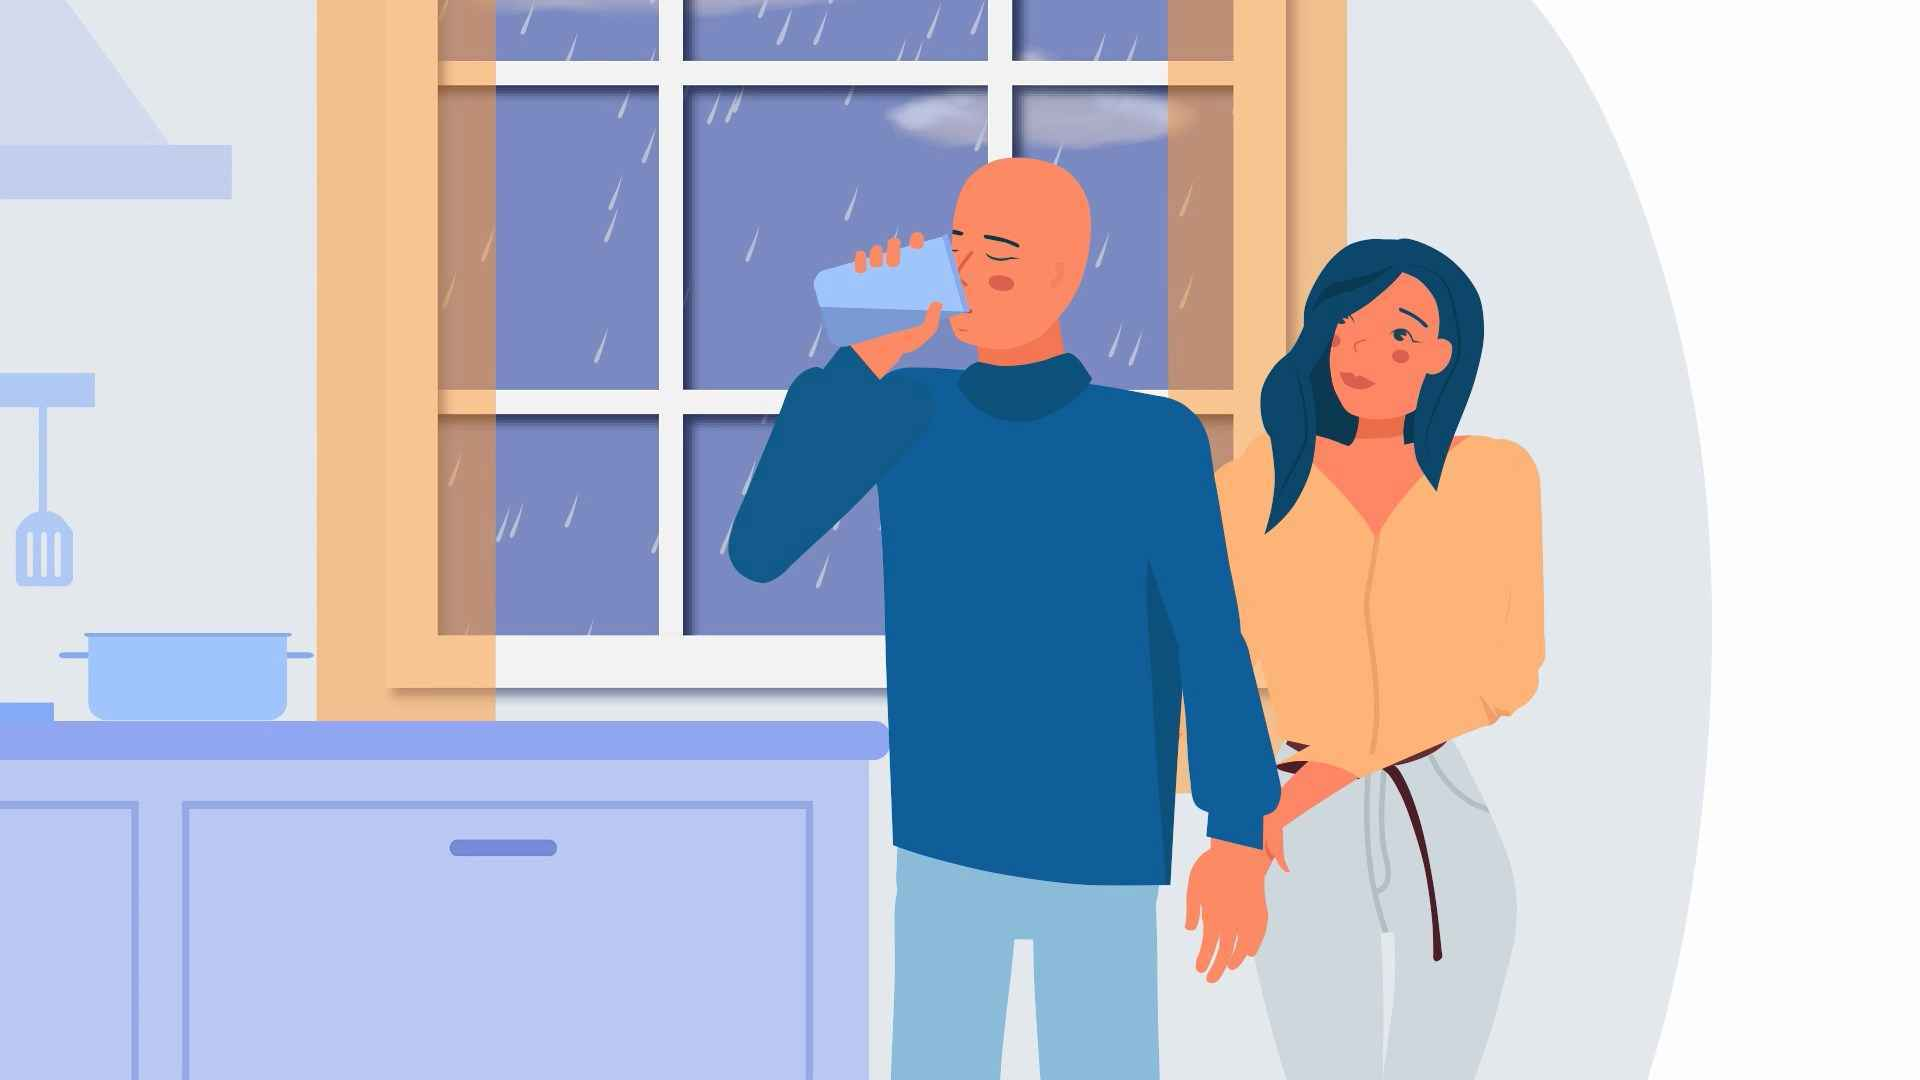 A man drinks a drink in an animated video